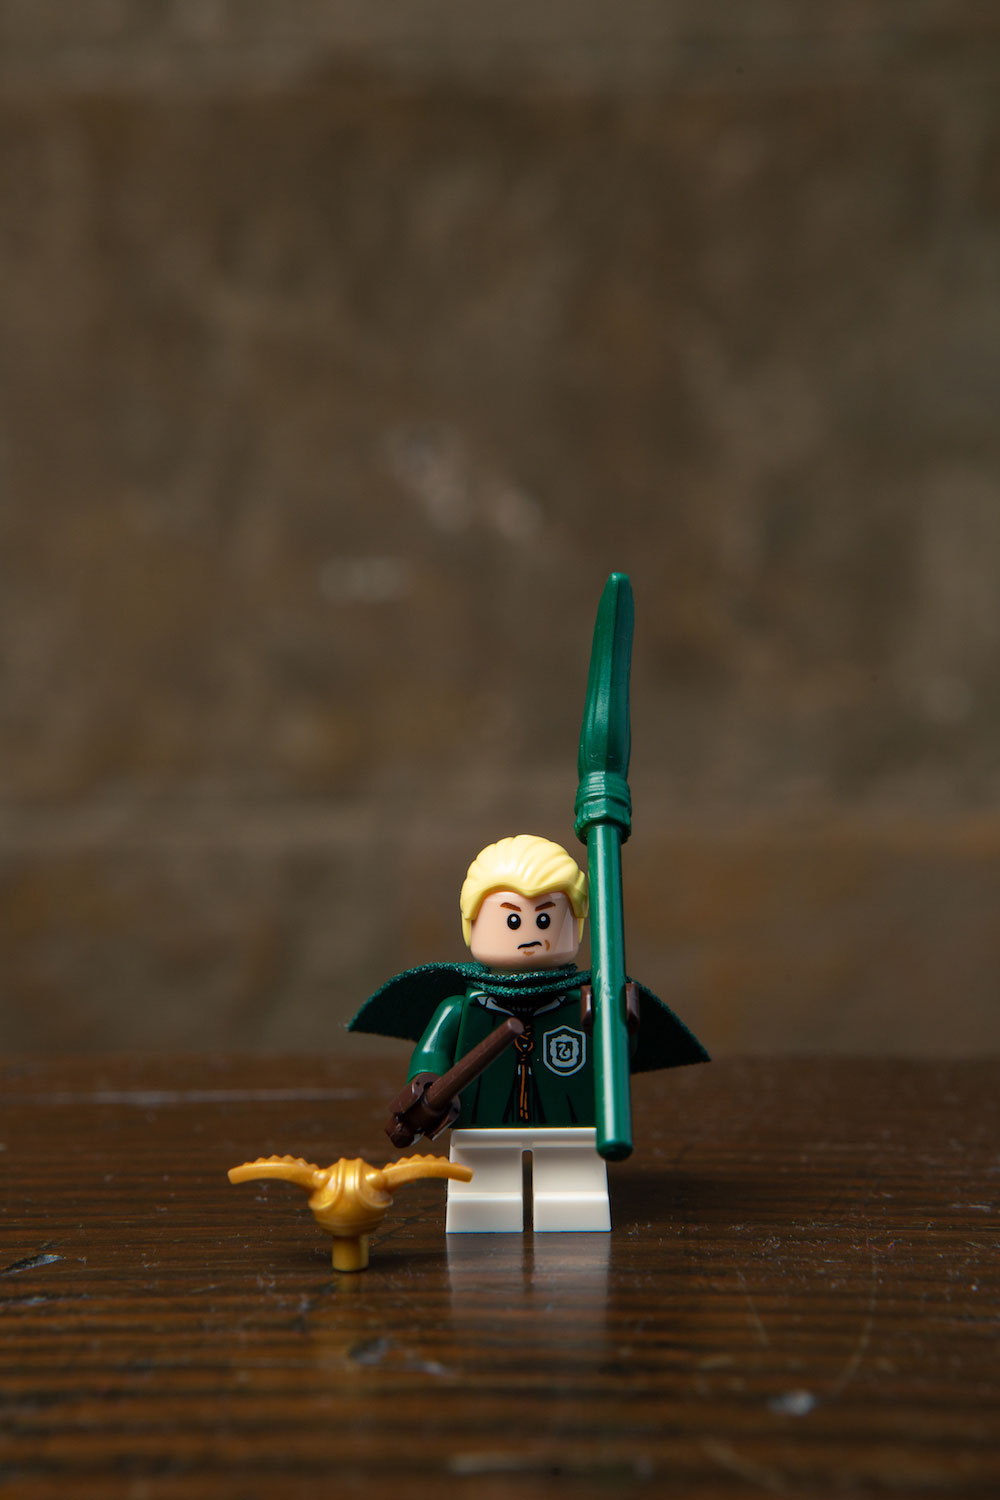 Draco's LEGO minifigure is dressed in his Quidditch uniform and a matching green broomstick – all of which his father bought him, of course.